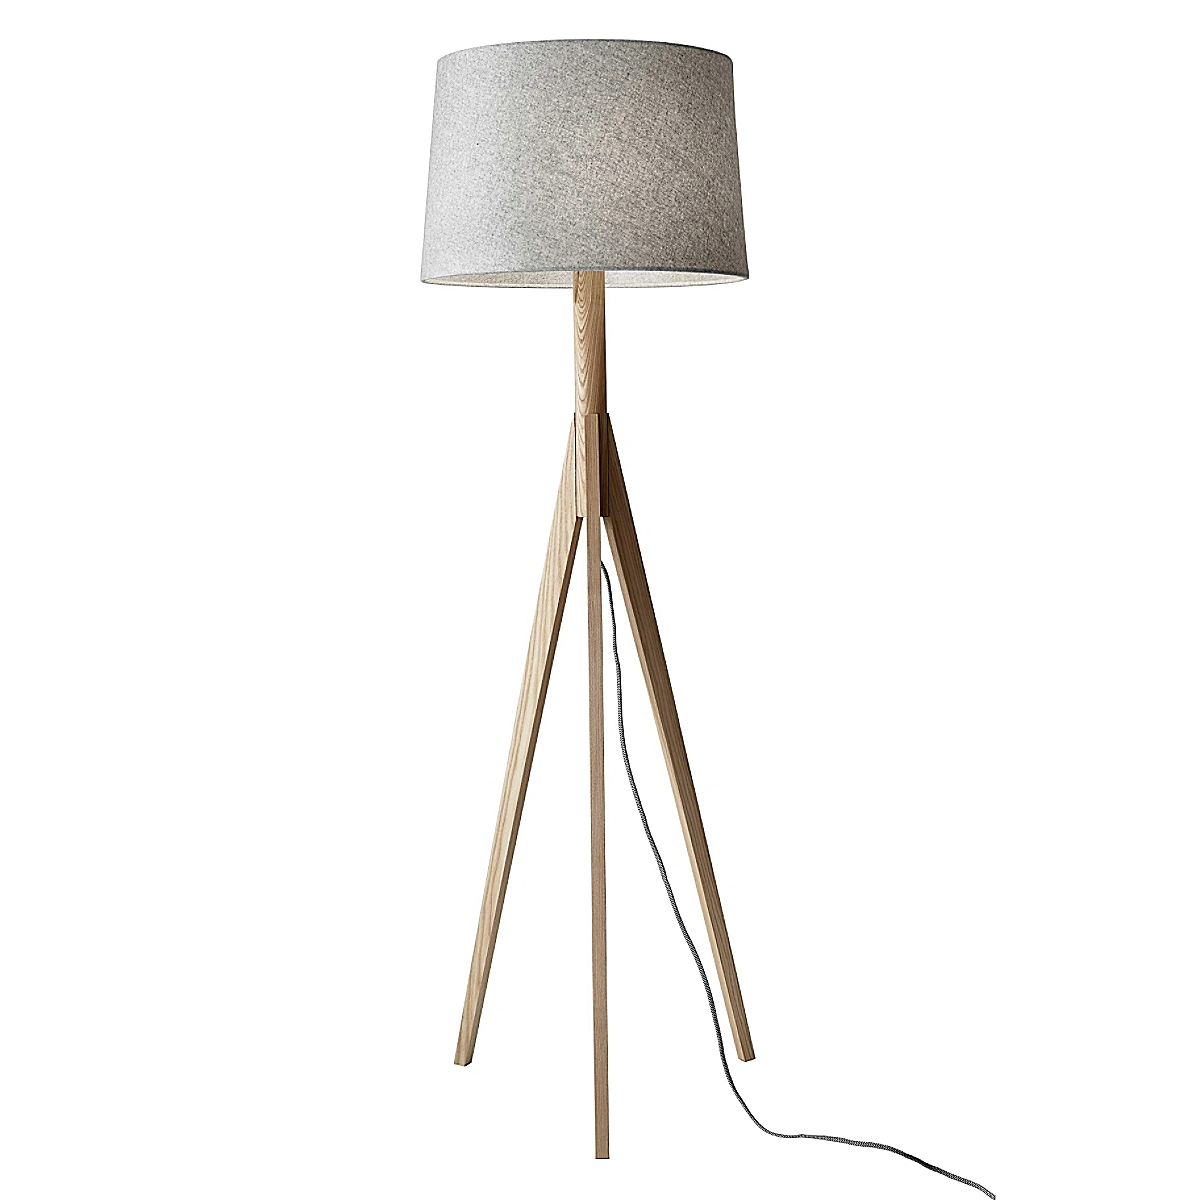 Modish Floor Lamp